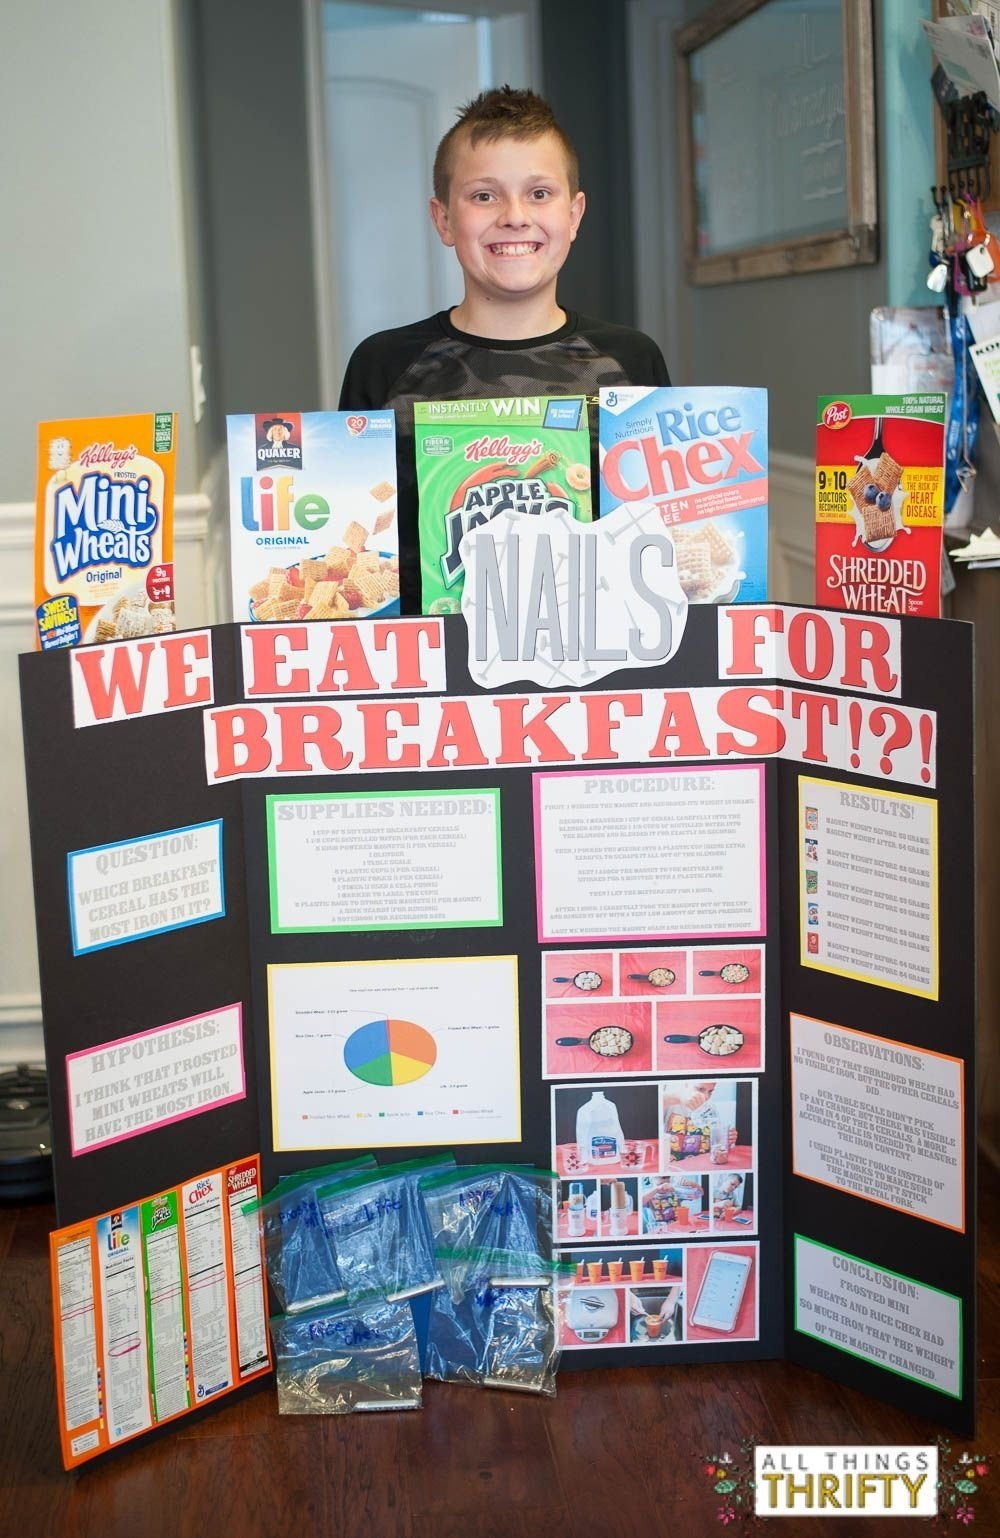 10 Cute Science Fair Project Ideas For 5Th Grade 75 science fair project ideas pinteres 1 2021